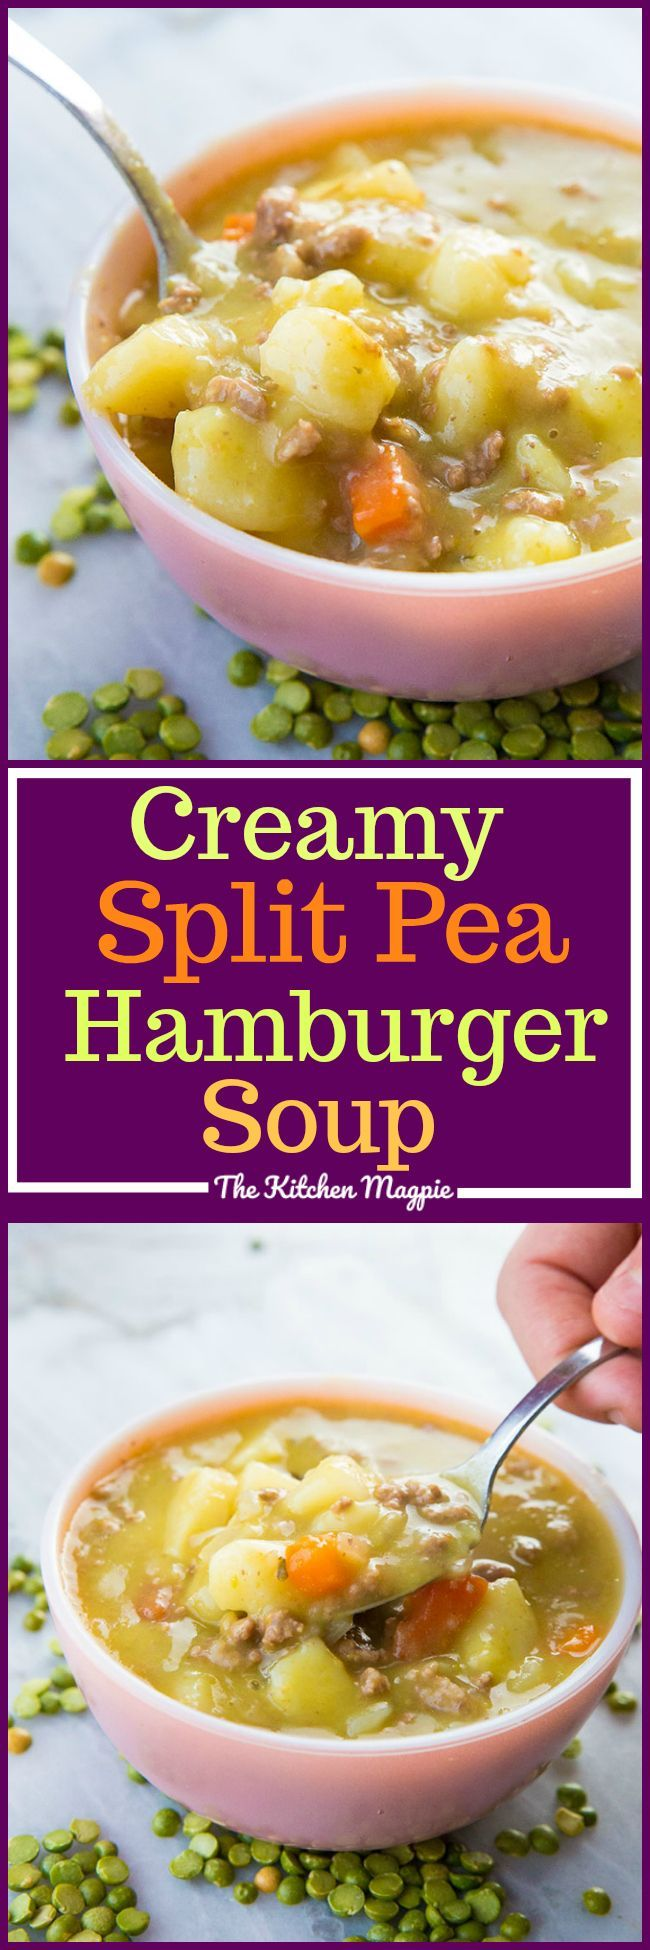 Creamy Split Pea Hamburger Soup done in the Instant Pot or your slow cooker! This hearty soup is chock full of protein and iron and is delicious! #recipe #soup #instantpot #slowcooker #hamburgersoup